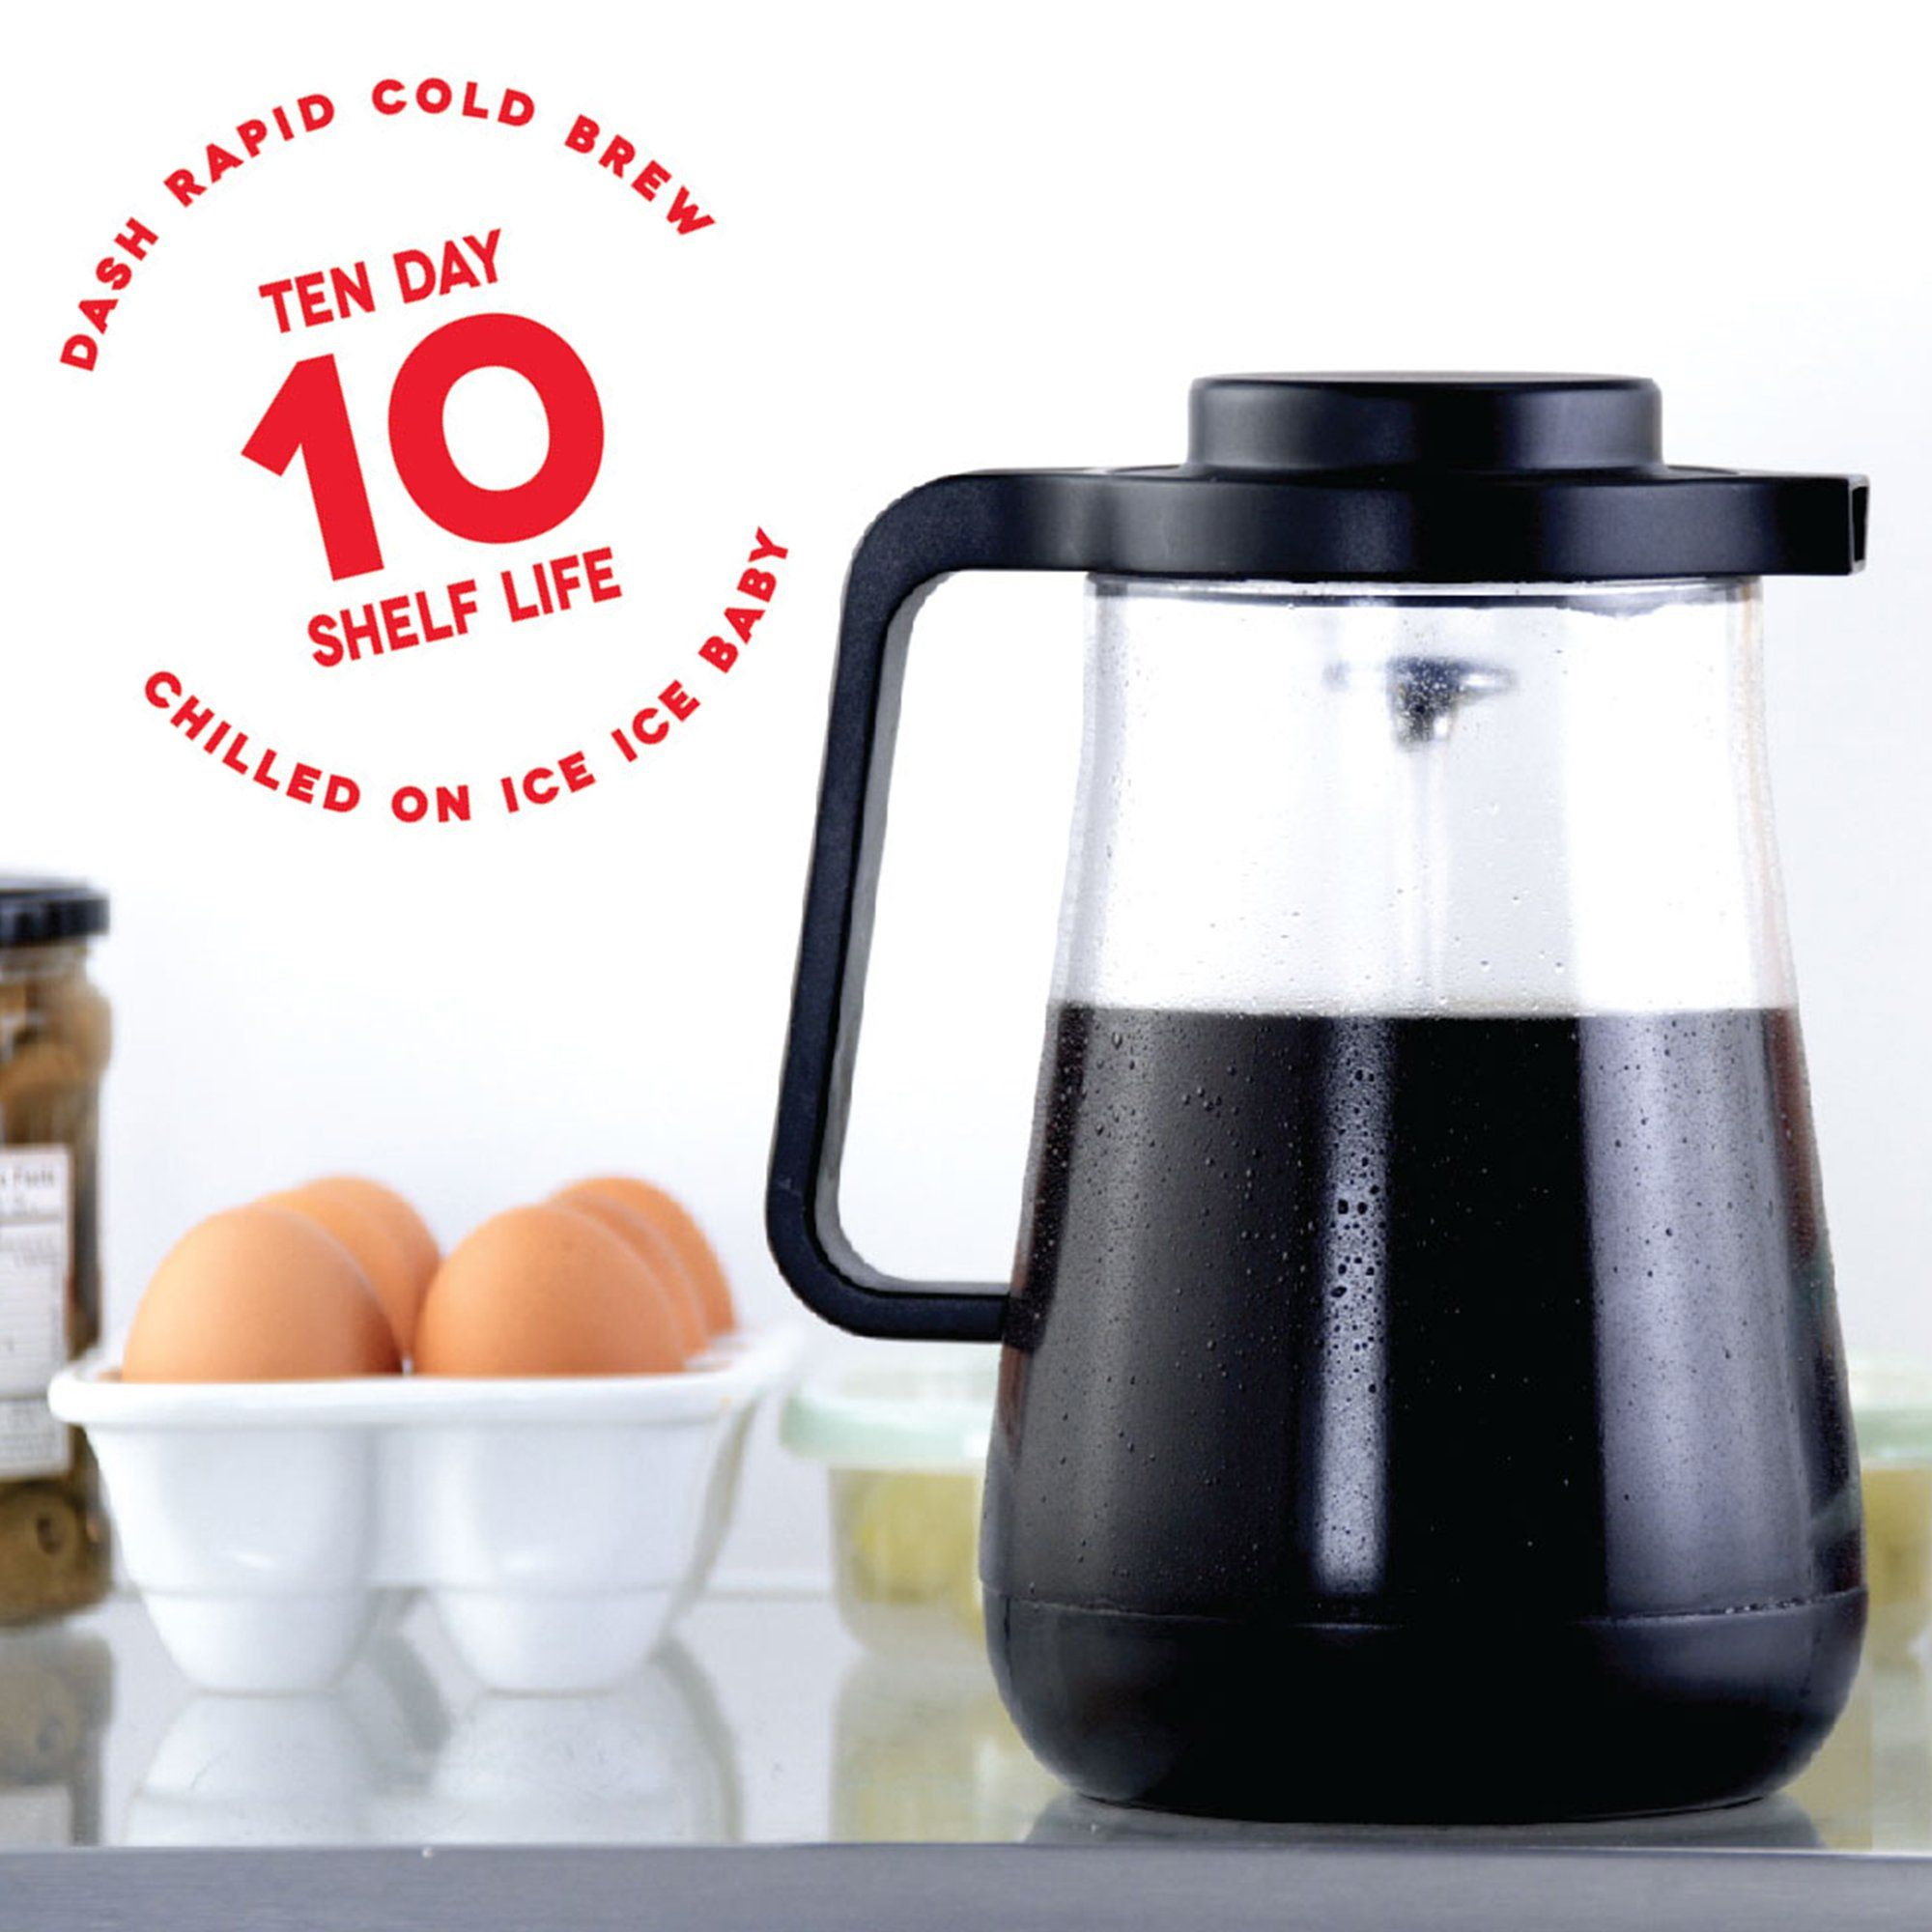 Dash Rapid Cold Brew Coffee Maker With Easy Pour Spout 42 Oz 1 5 L Carafe Pitcher Black More Info Co Cold Brew Coffee Cold Brew Coffee Maker Carafe Pitcher